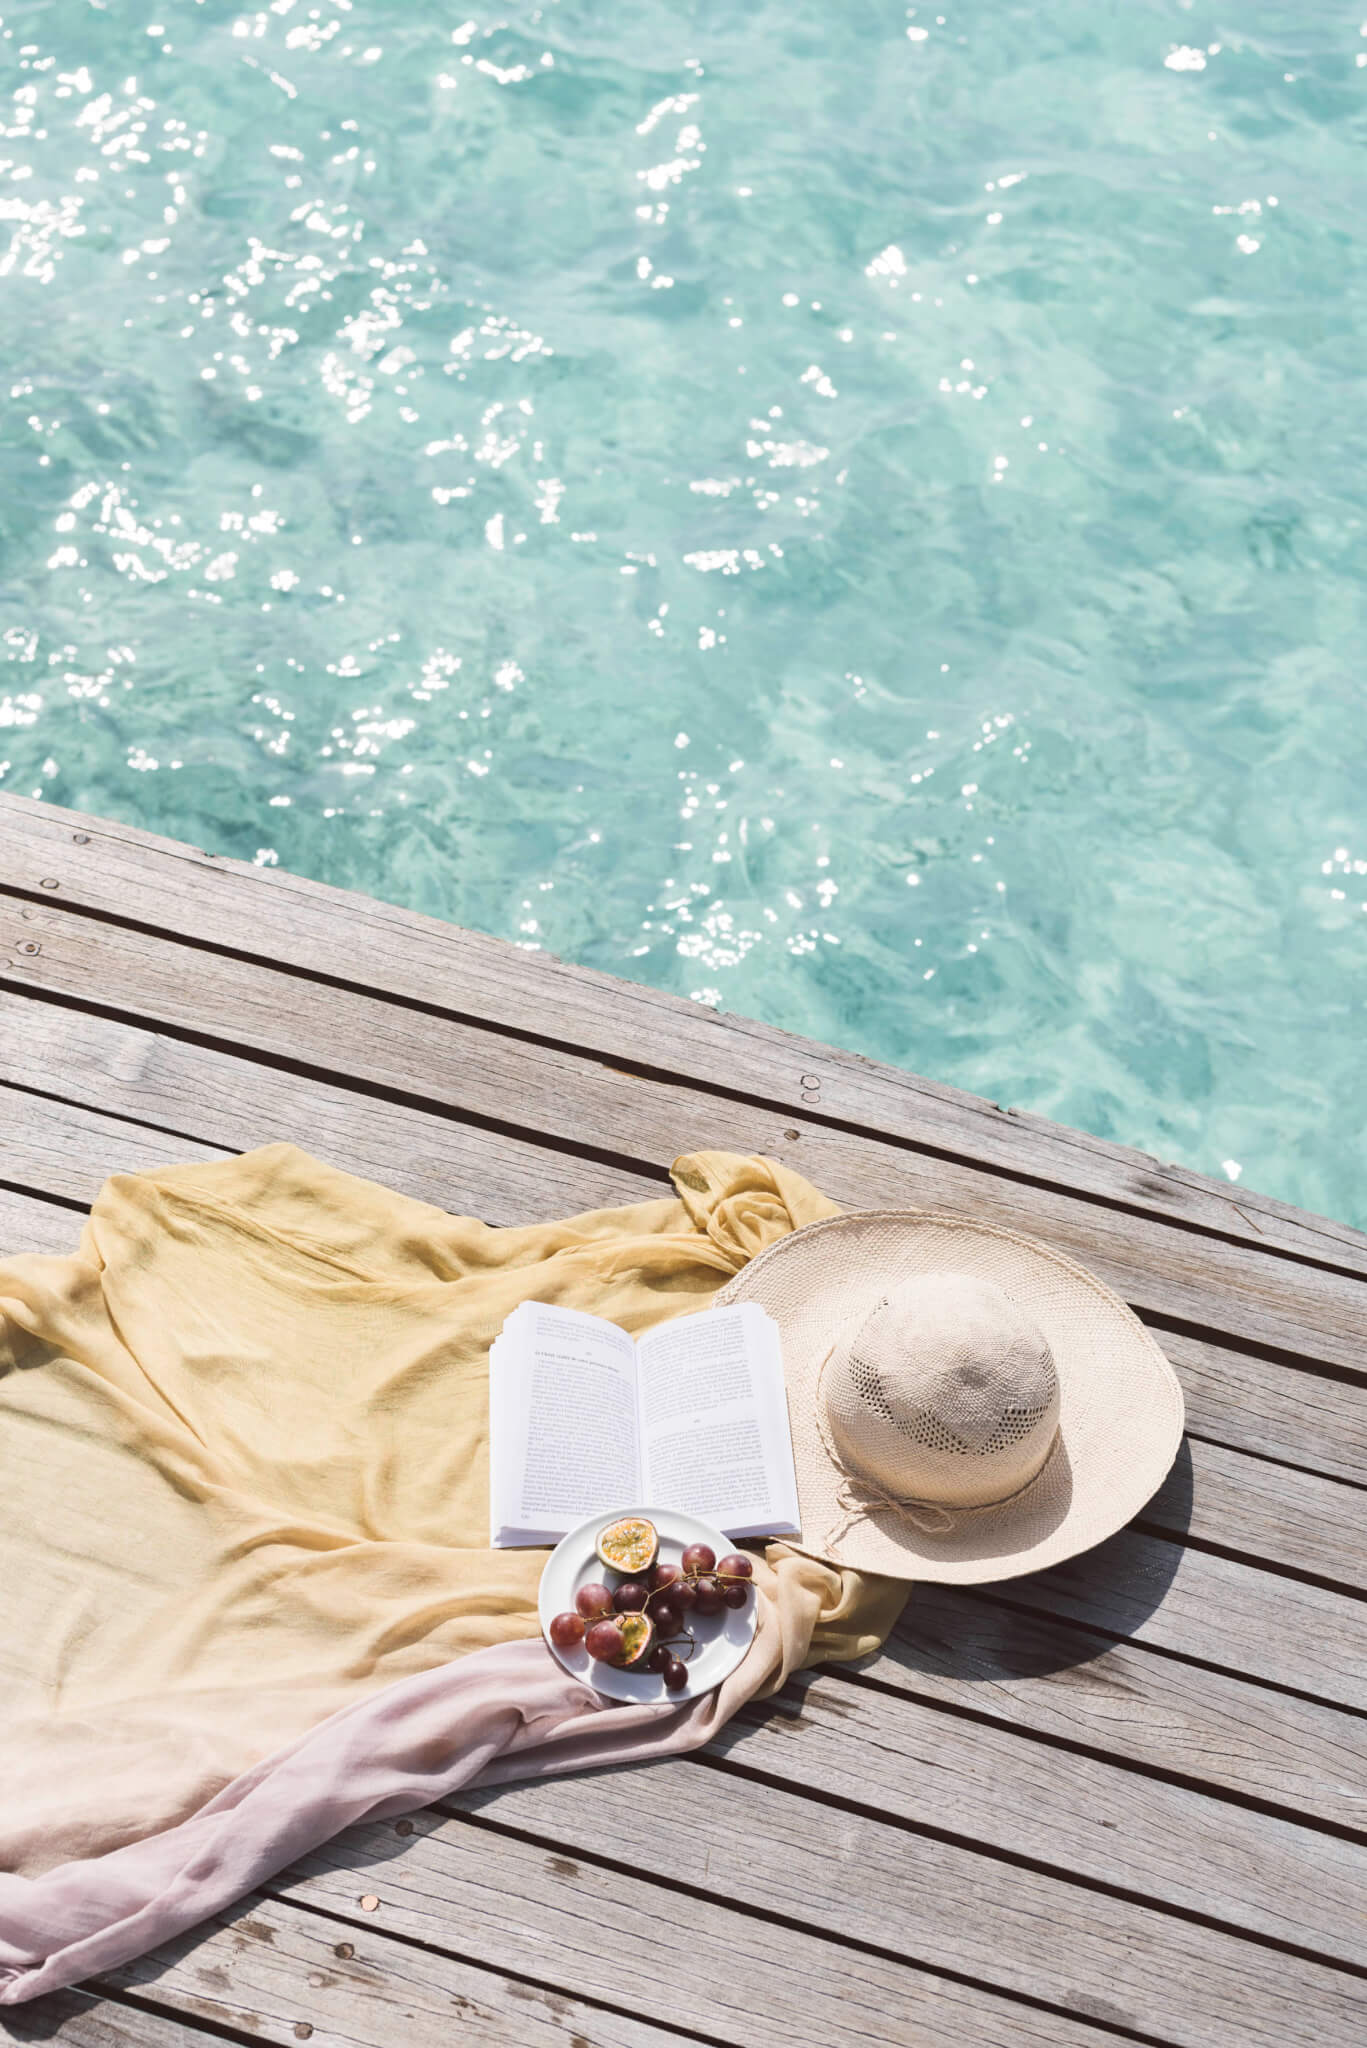 Reading by crystal clear waters